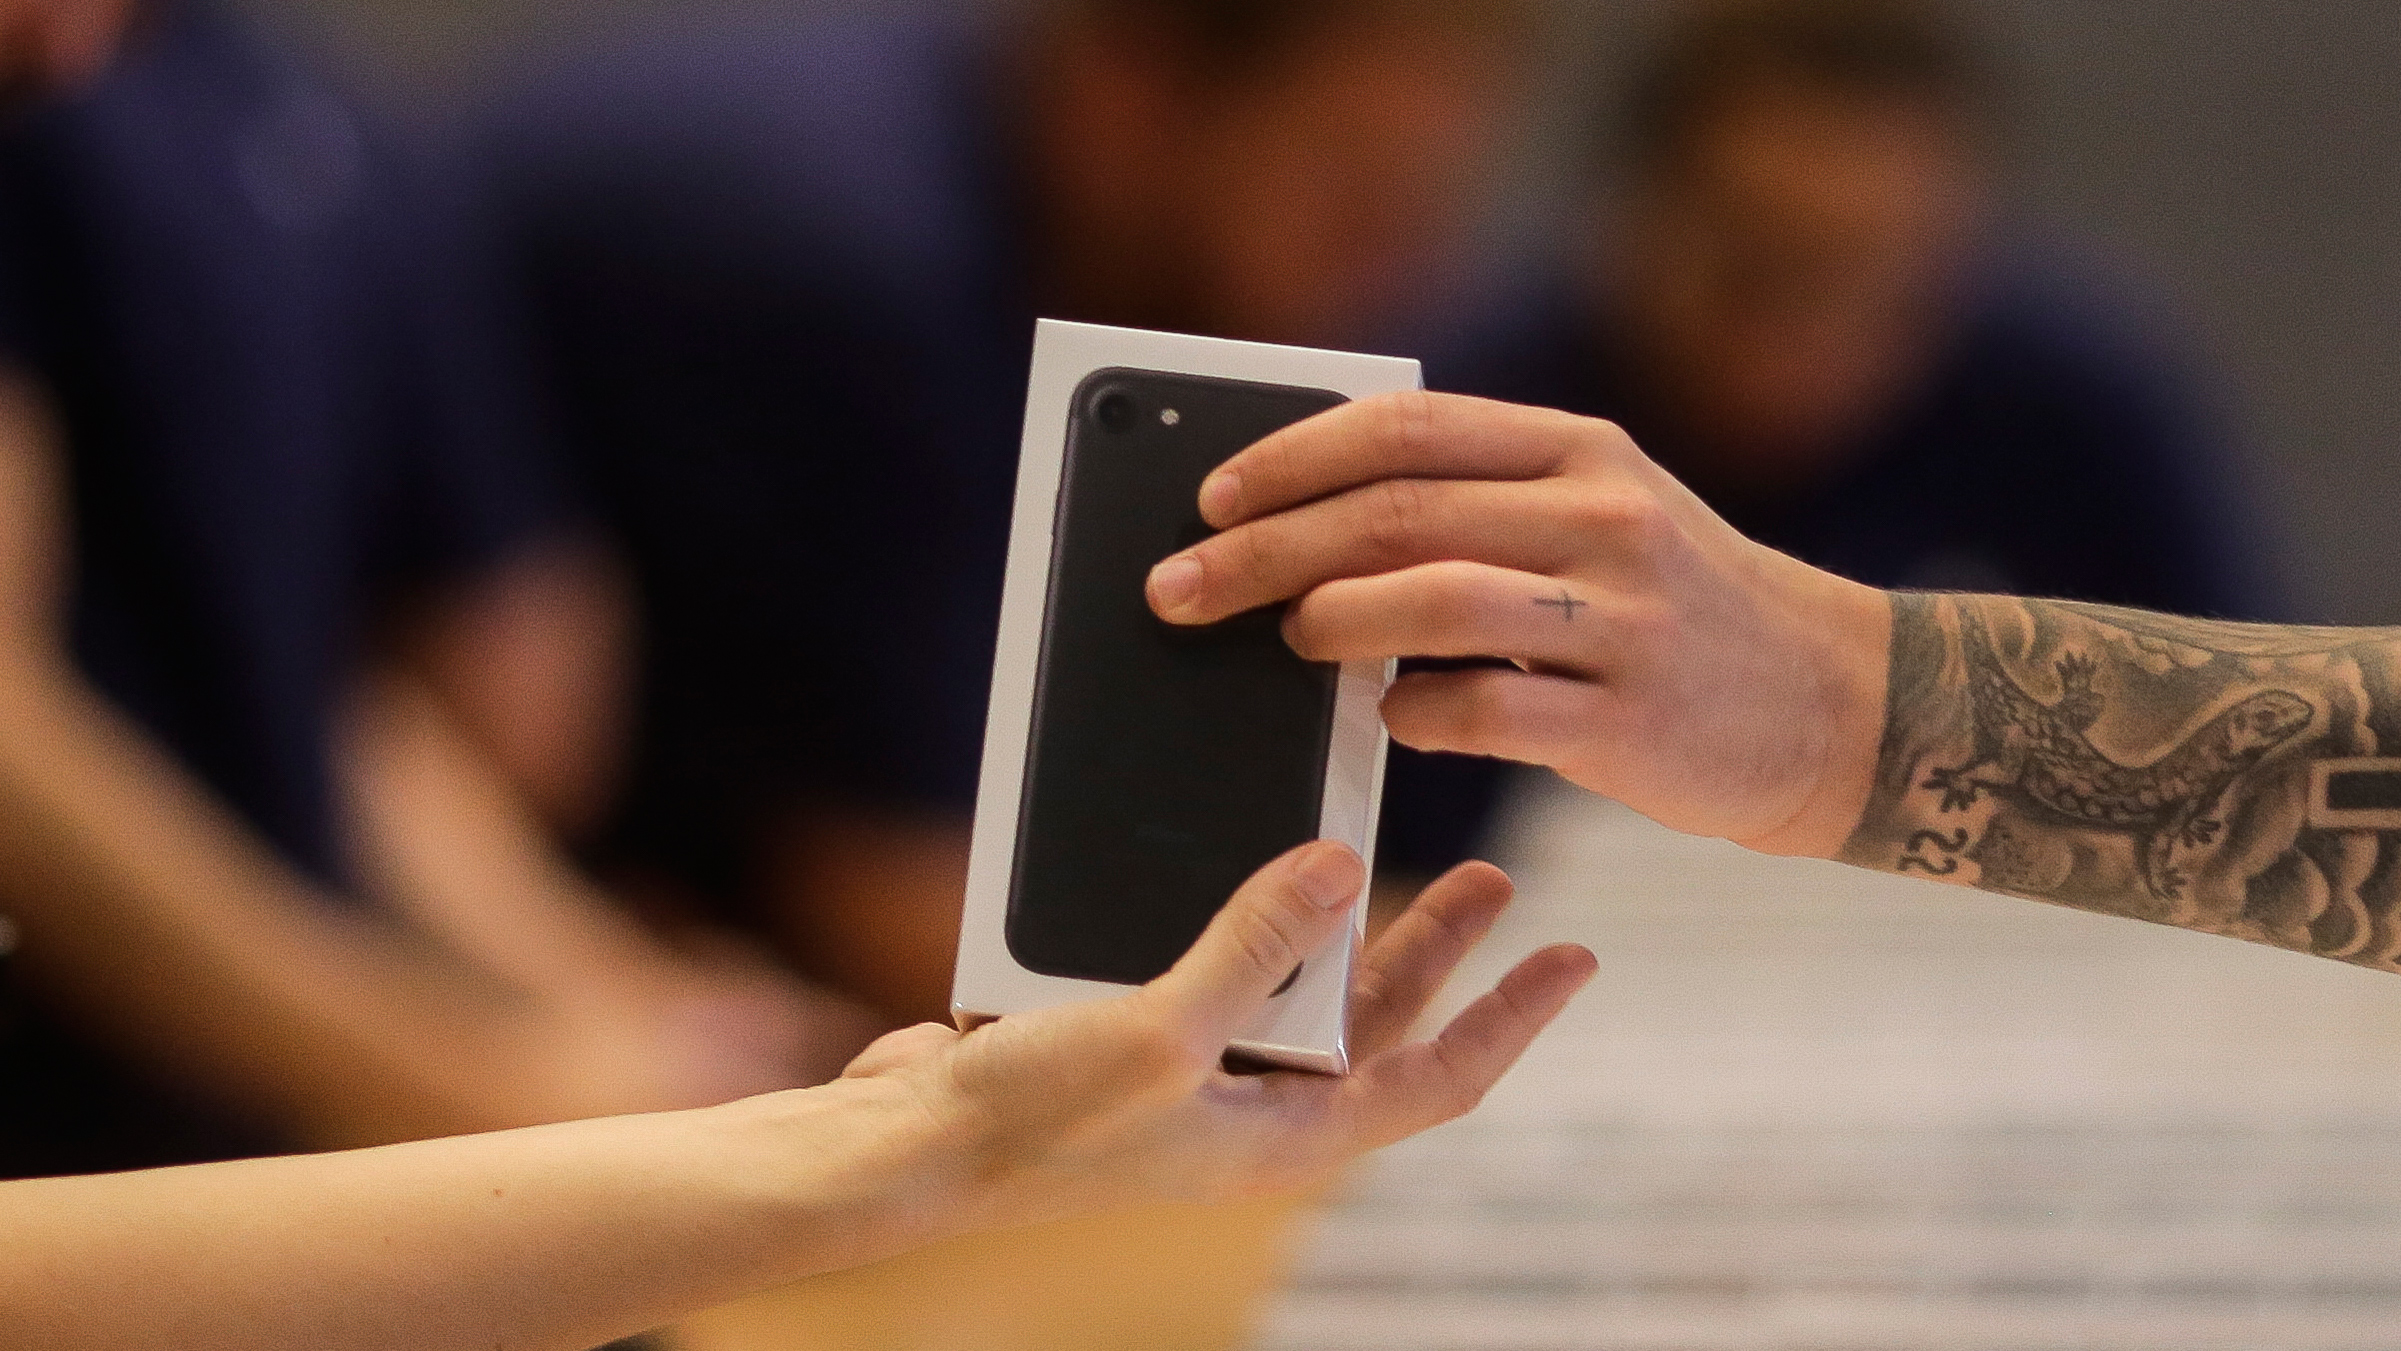 Apple shop staff hand out the new iPhone 7 to customers at the Apple store in Berlin, Friday, Sept. 16, 2016. Apple's newest mobile devices, the iPhone 7 and 7 Plus went on sale in the country on Friday. (AP Photo/Markus Schreiber)